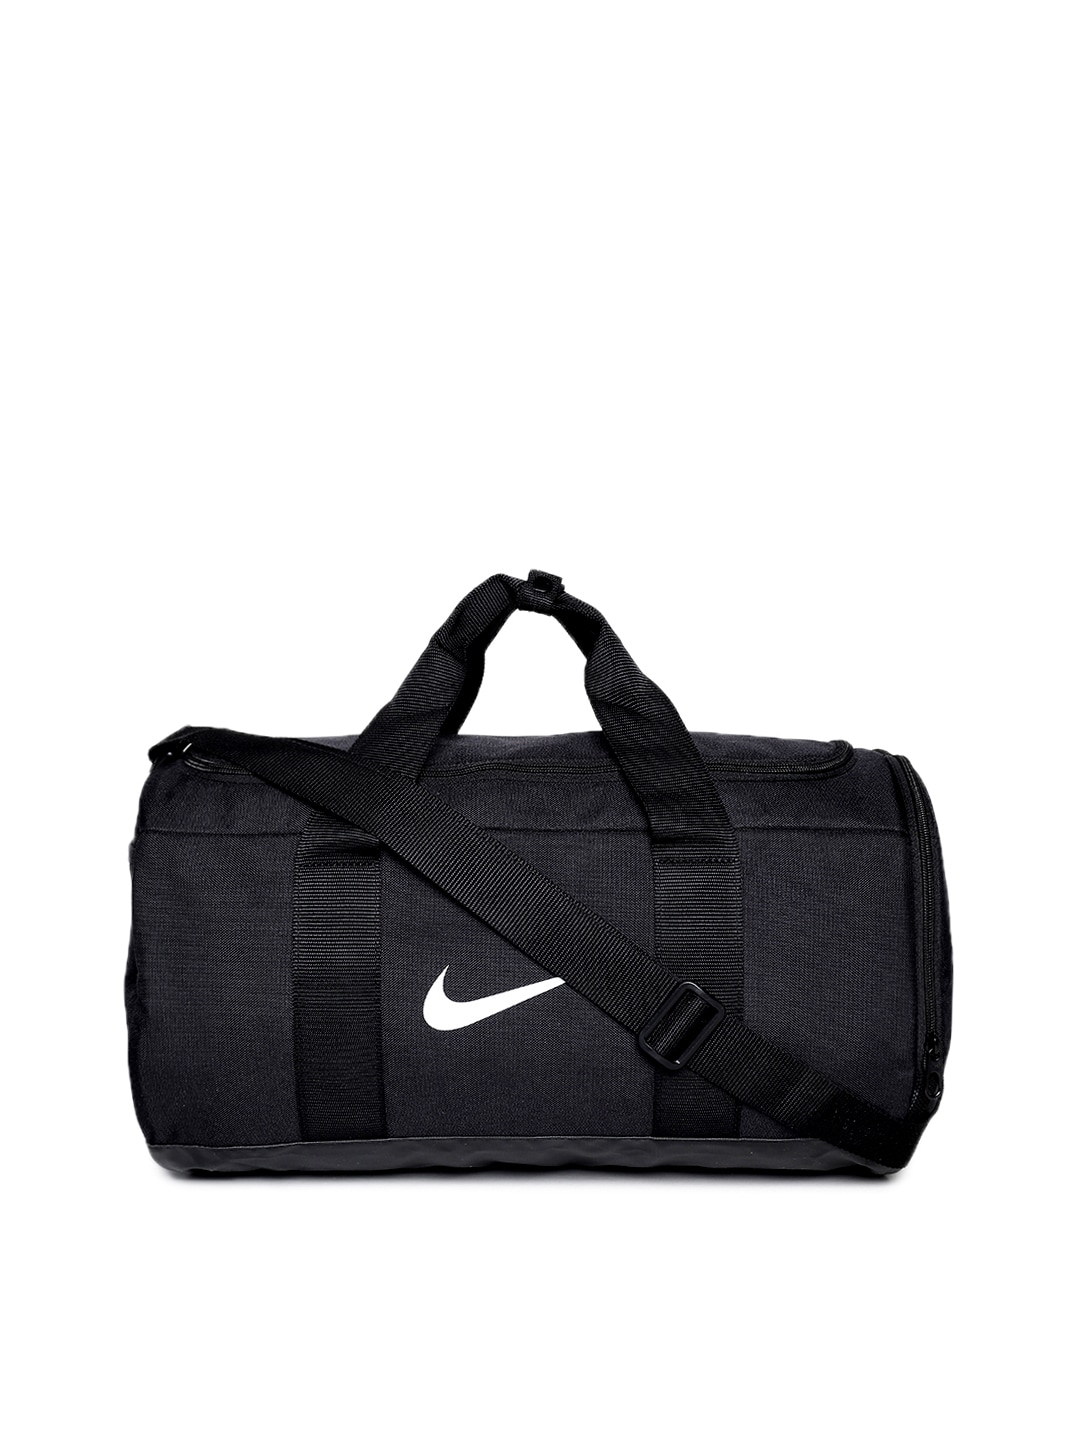 Nike Women Black Team Duffle Bag c08bdc9abfbc4